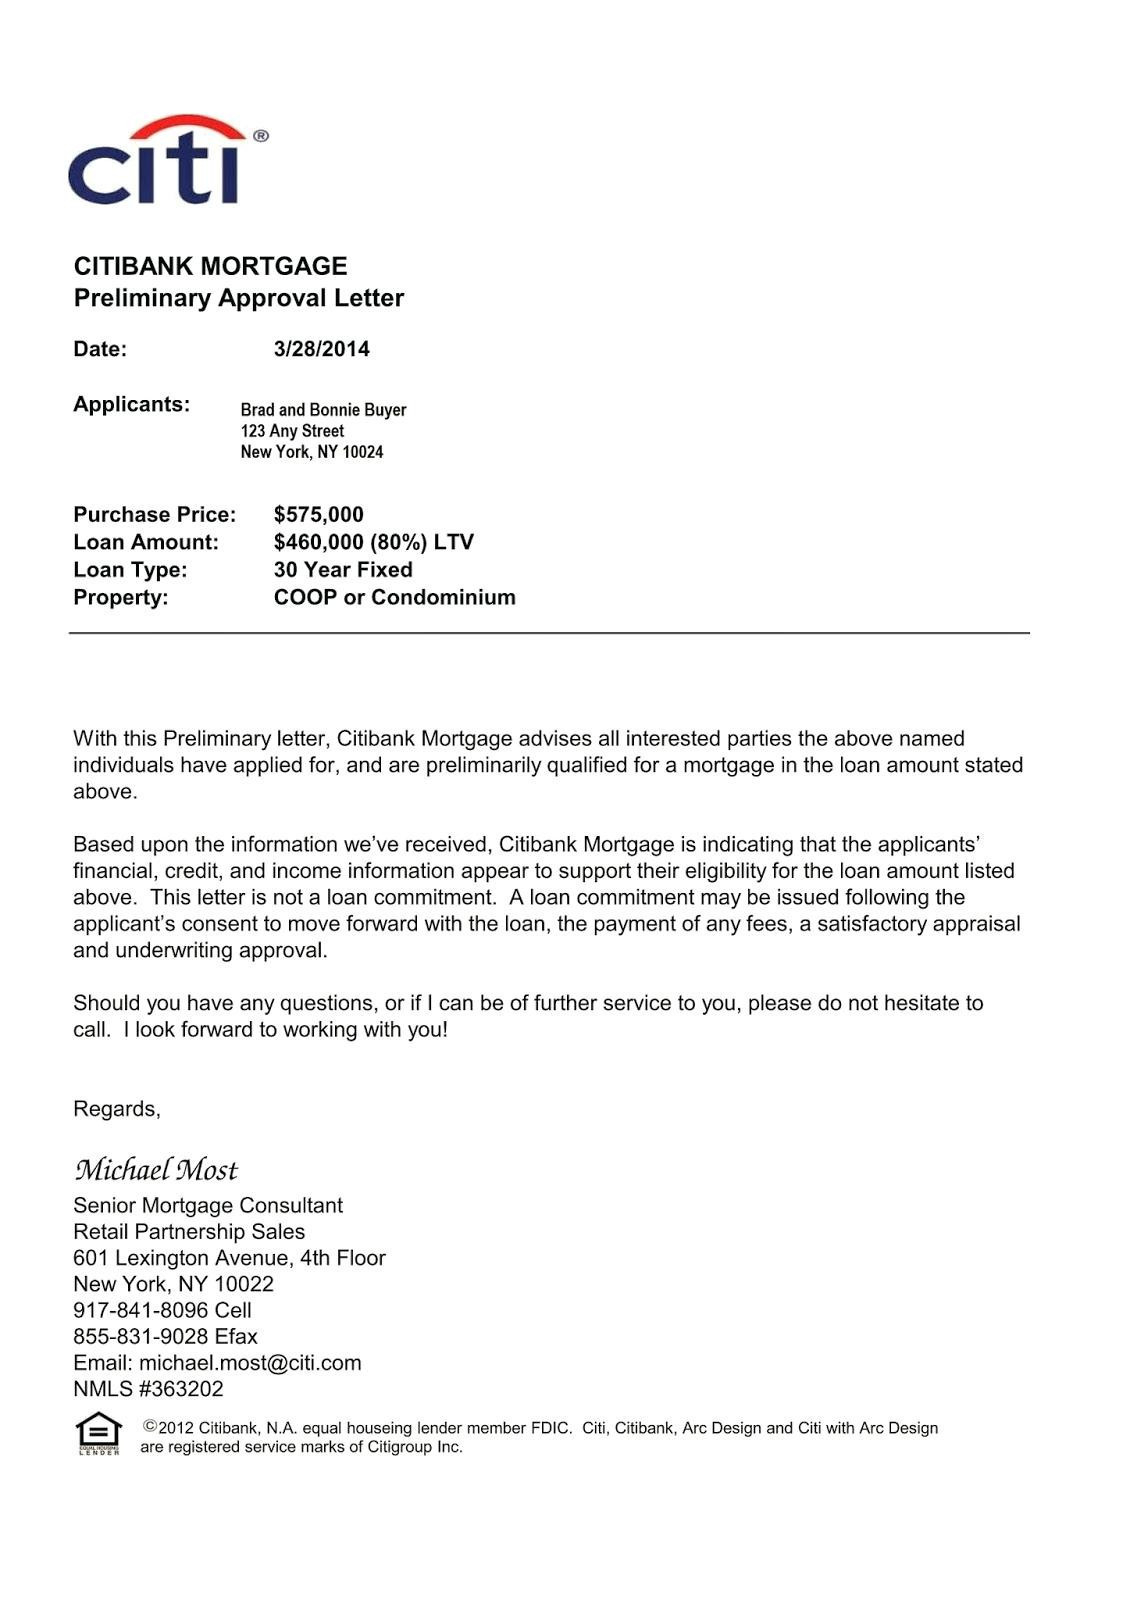 Mortgage Loan Approval Letter Template Samples | Letter Template